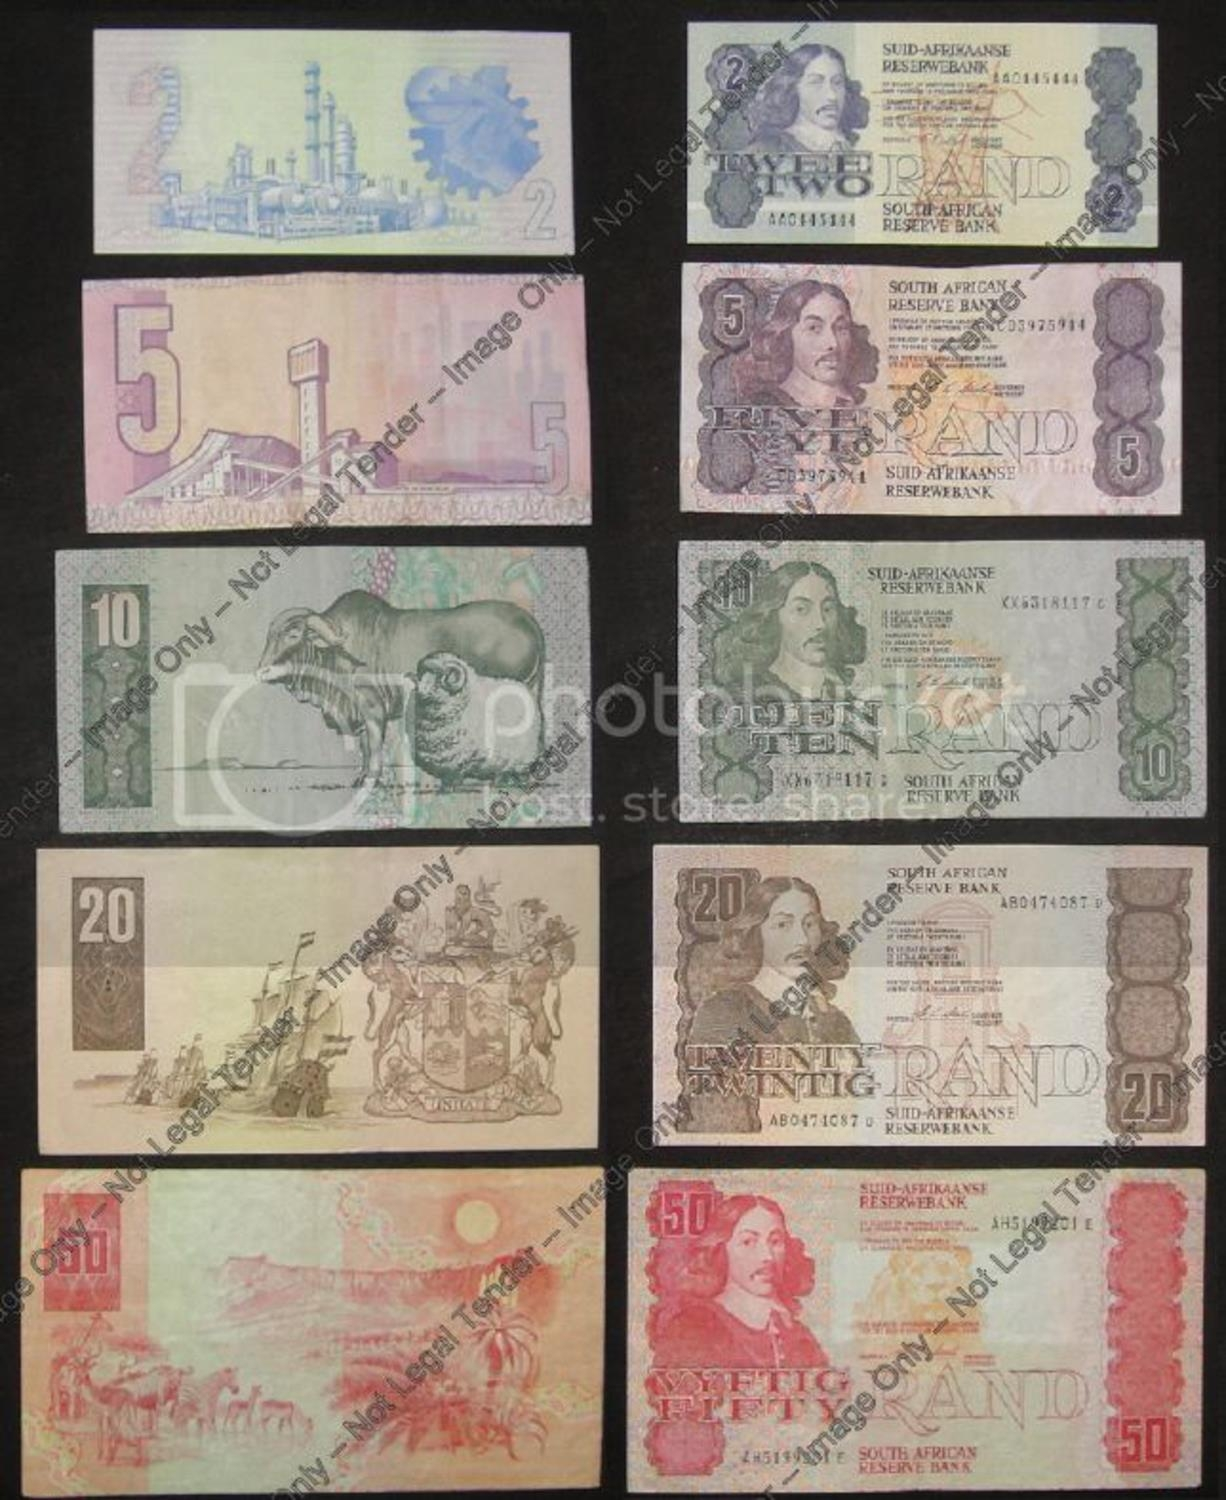 A MISCAELLANEOUS COLLECTION OF UNCOUNTED BANKNOTES